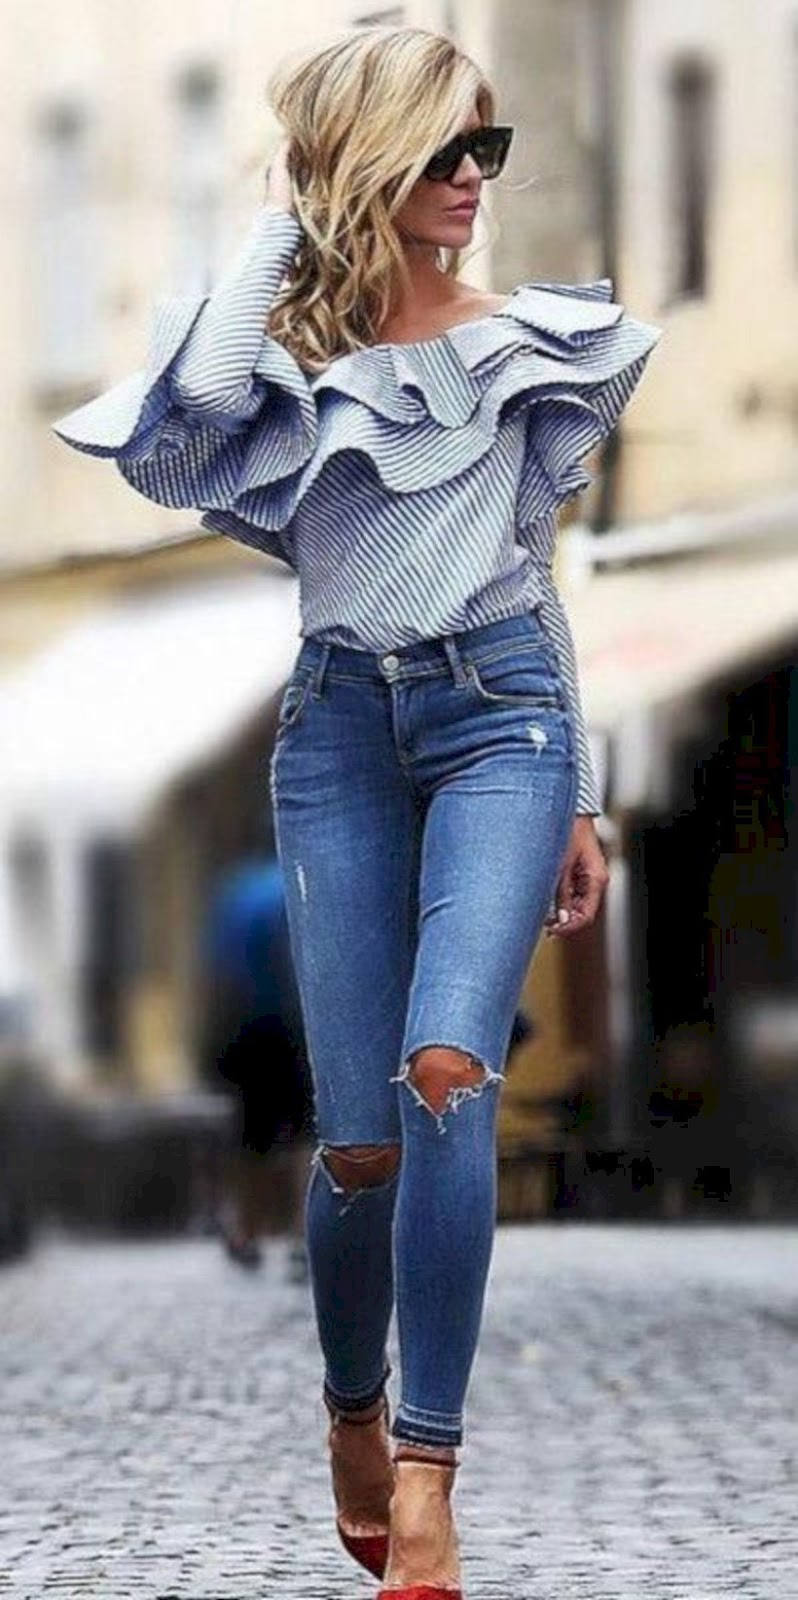 awesome outfit idea / one shoulder ruffle top + ripped jeans + red heels